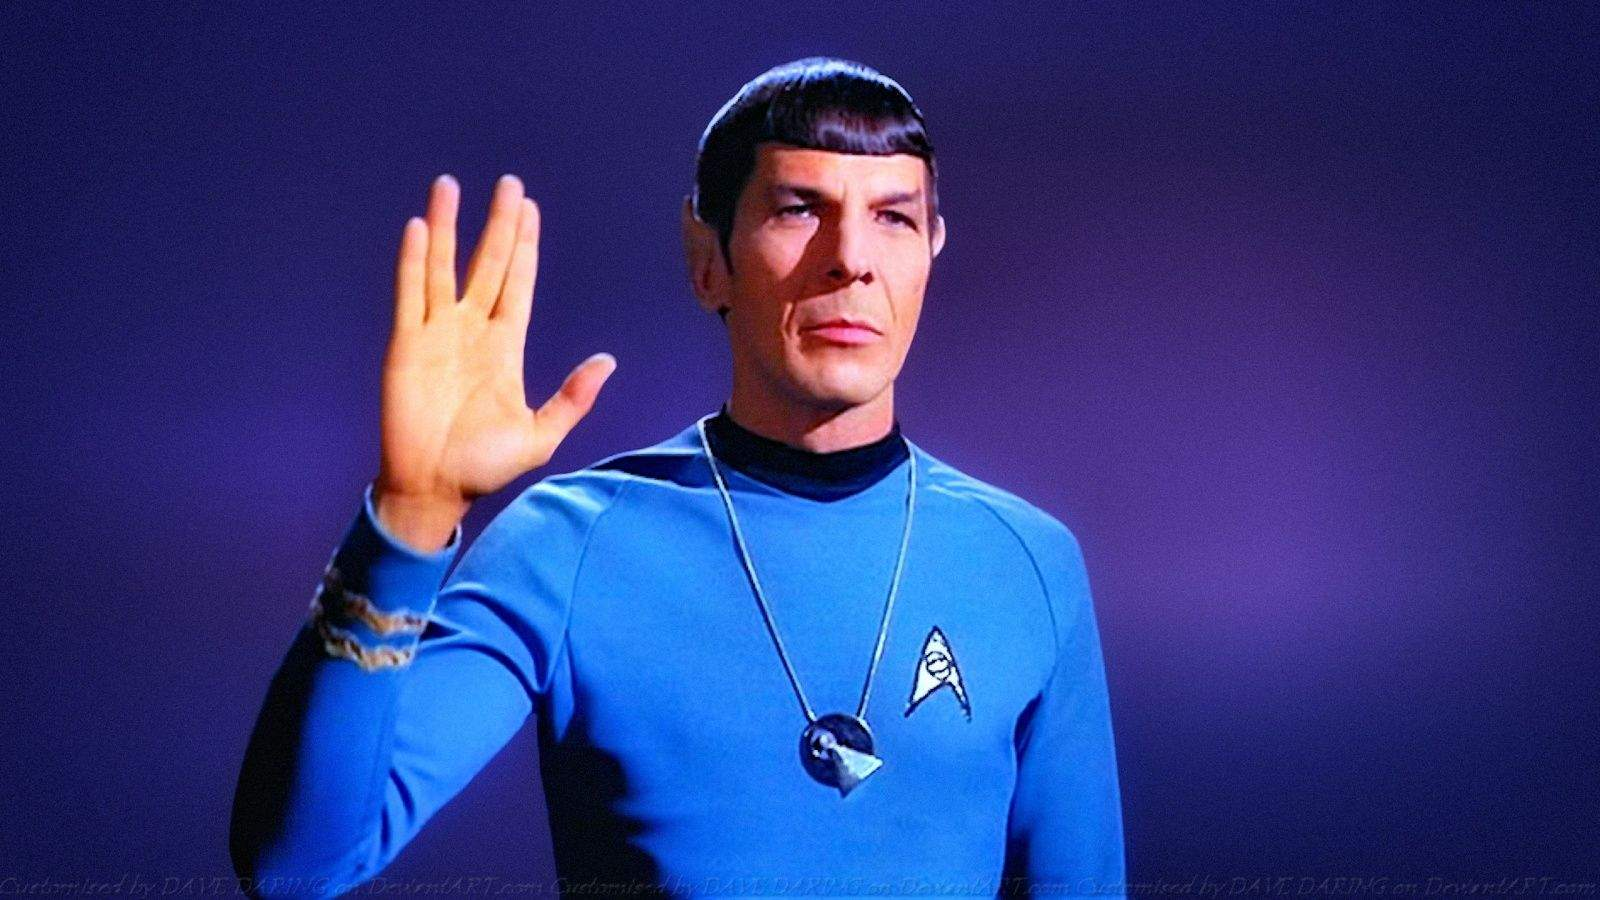 Spock's Vulcan Salute Should Replace Traditional Handshakes to prevent Coronavirus 31